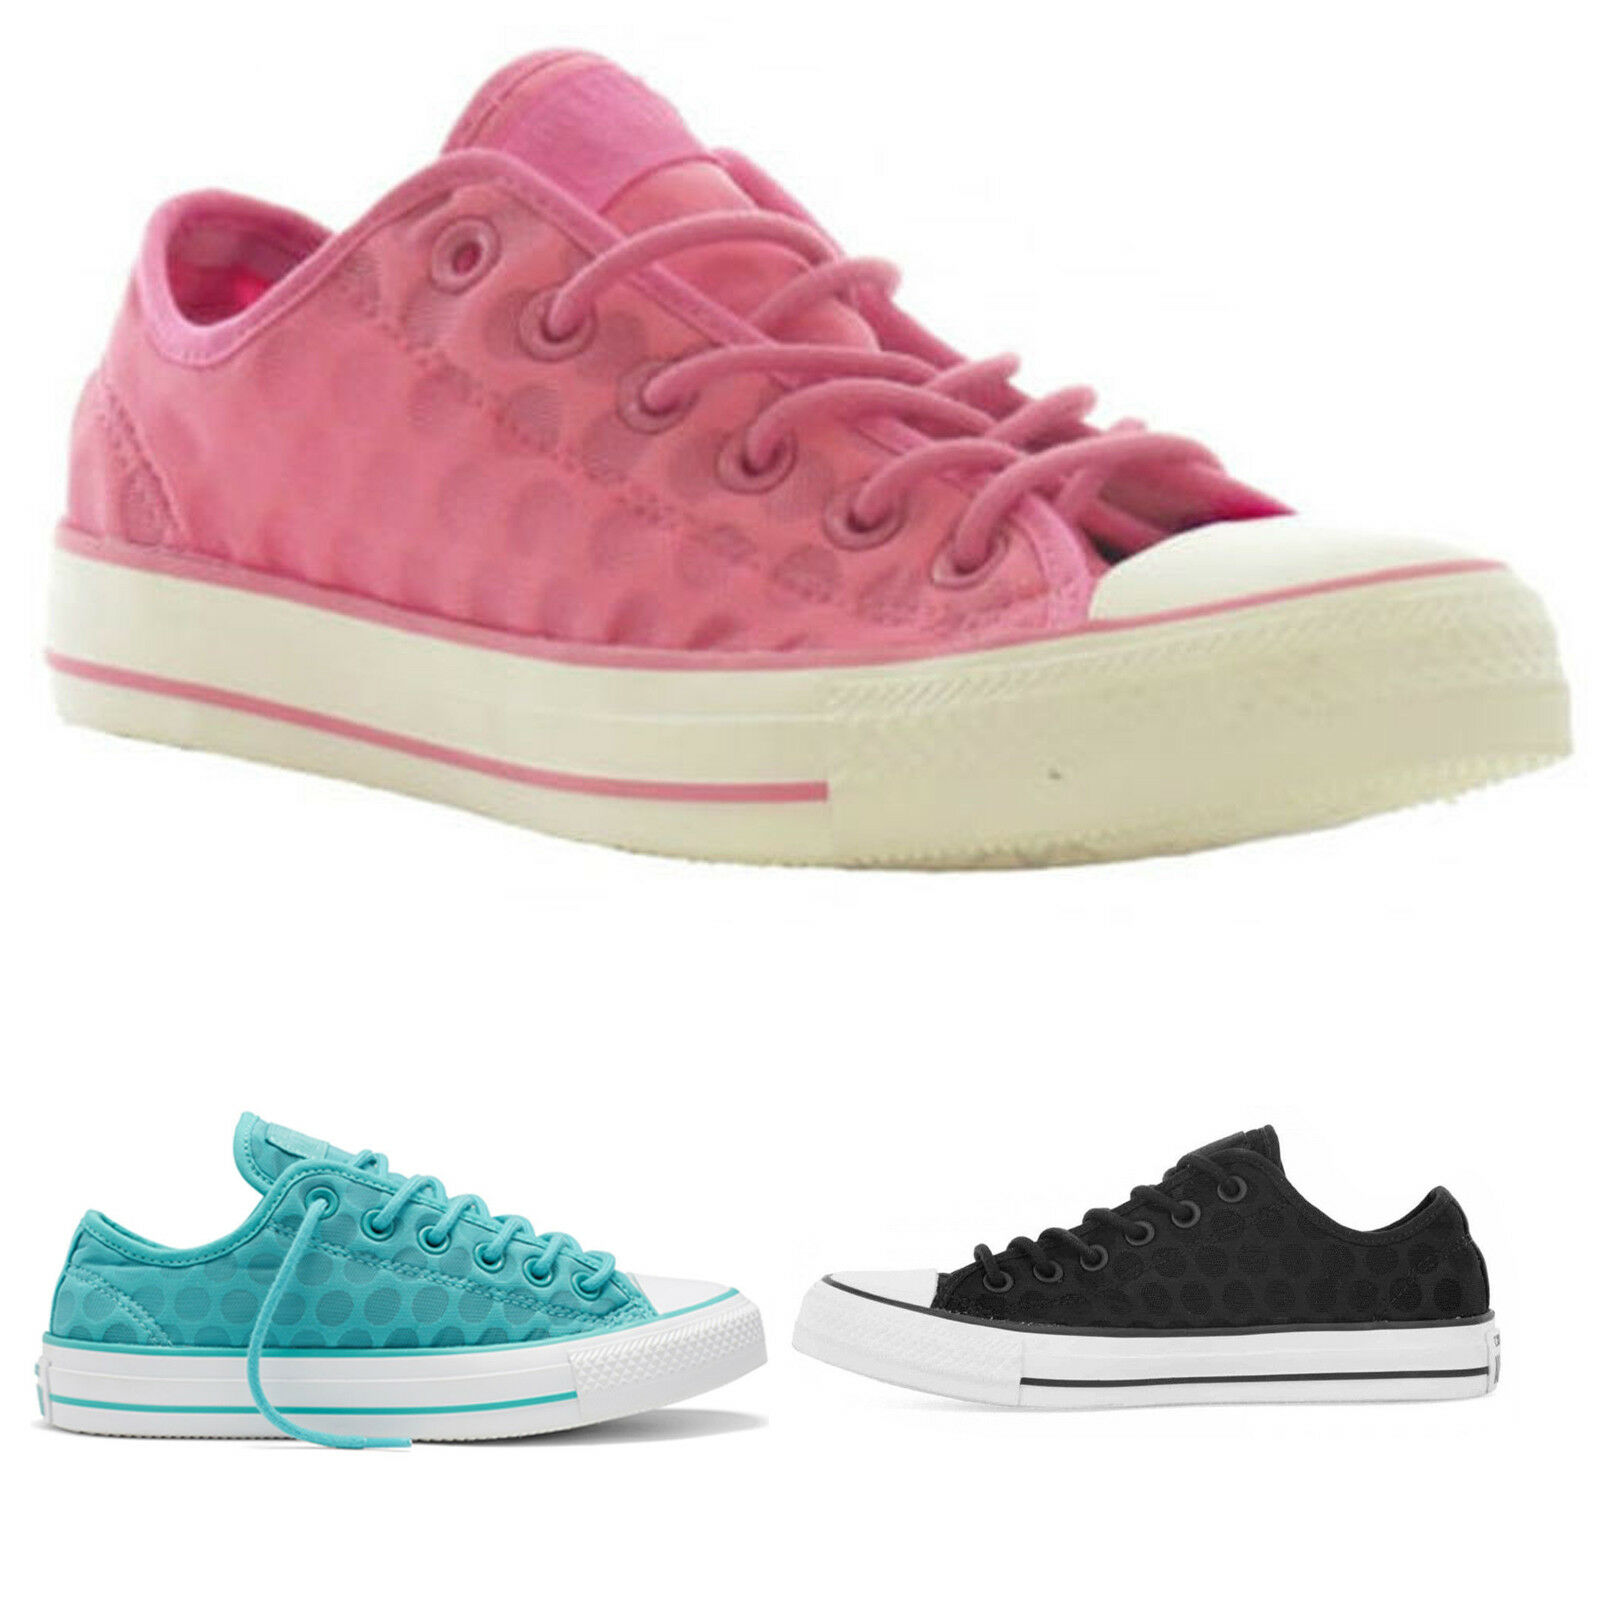 Ladies Womens Converse All Star Chucks Breathable Trainers Shoes 3 4 5 6 7 8 9